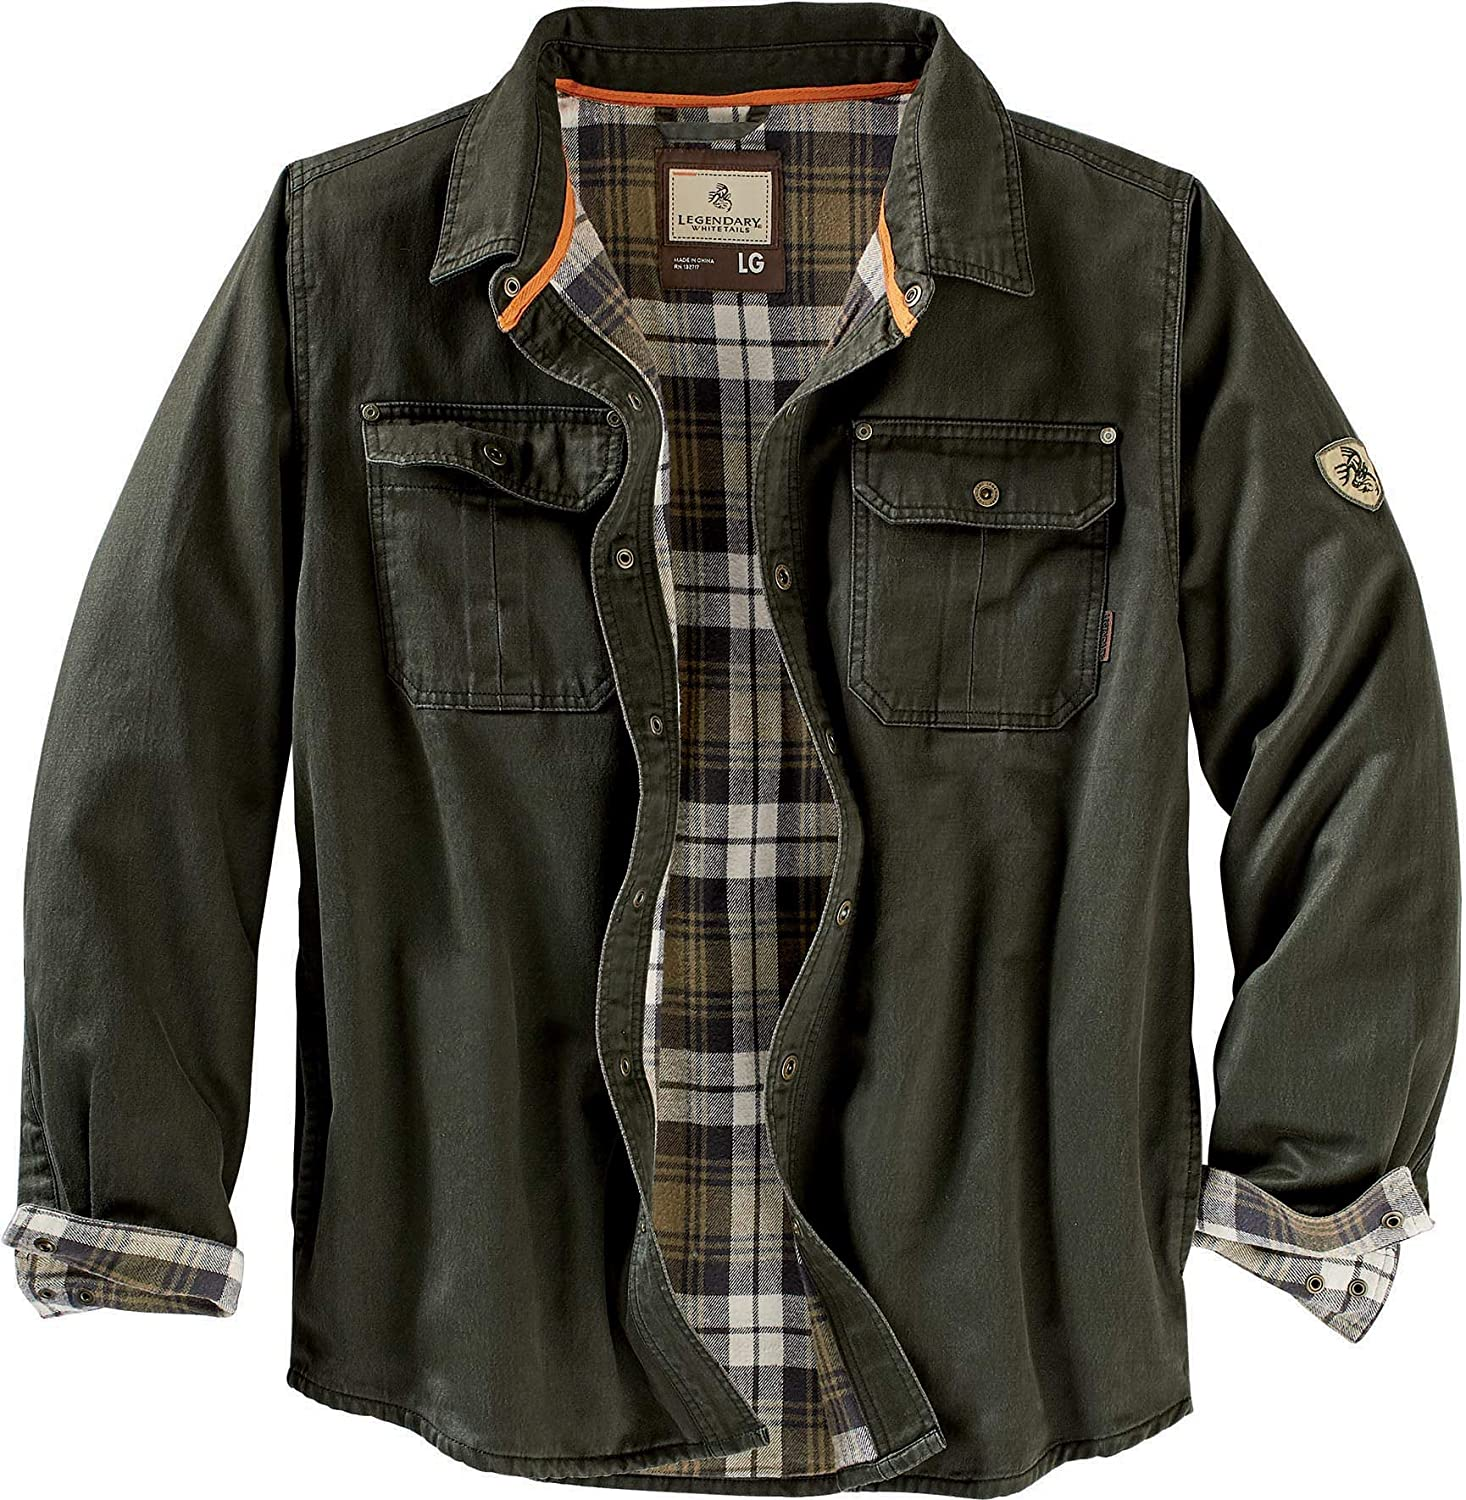 Legendary Whitetails Men's Journeyman Flannel Lined Rugged Shirt Jacket: Clothing